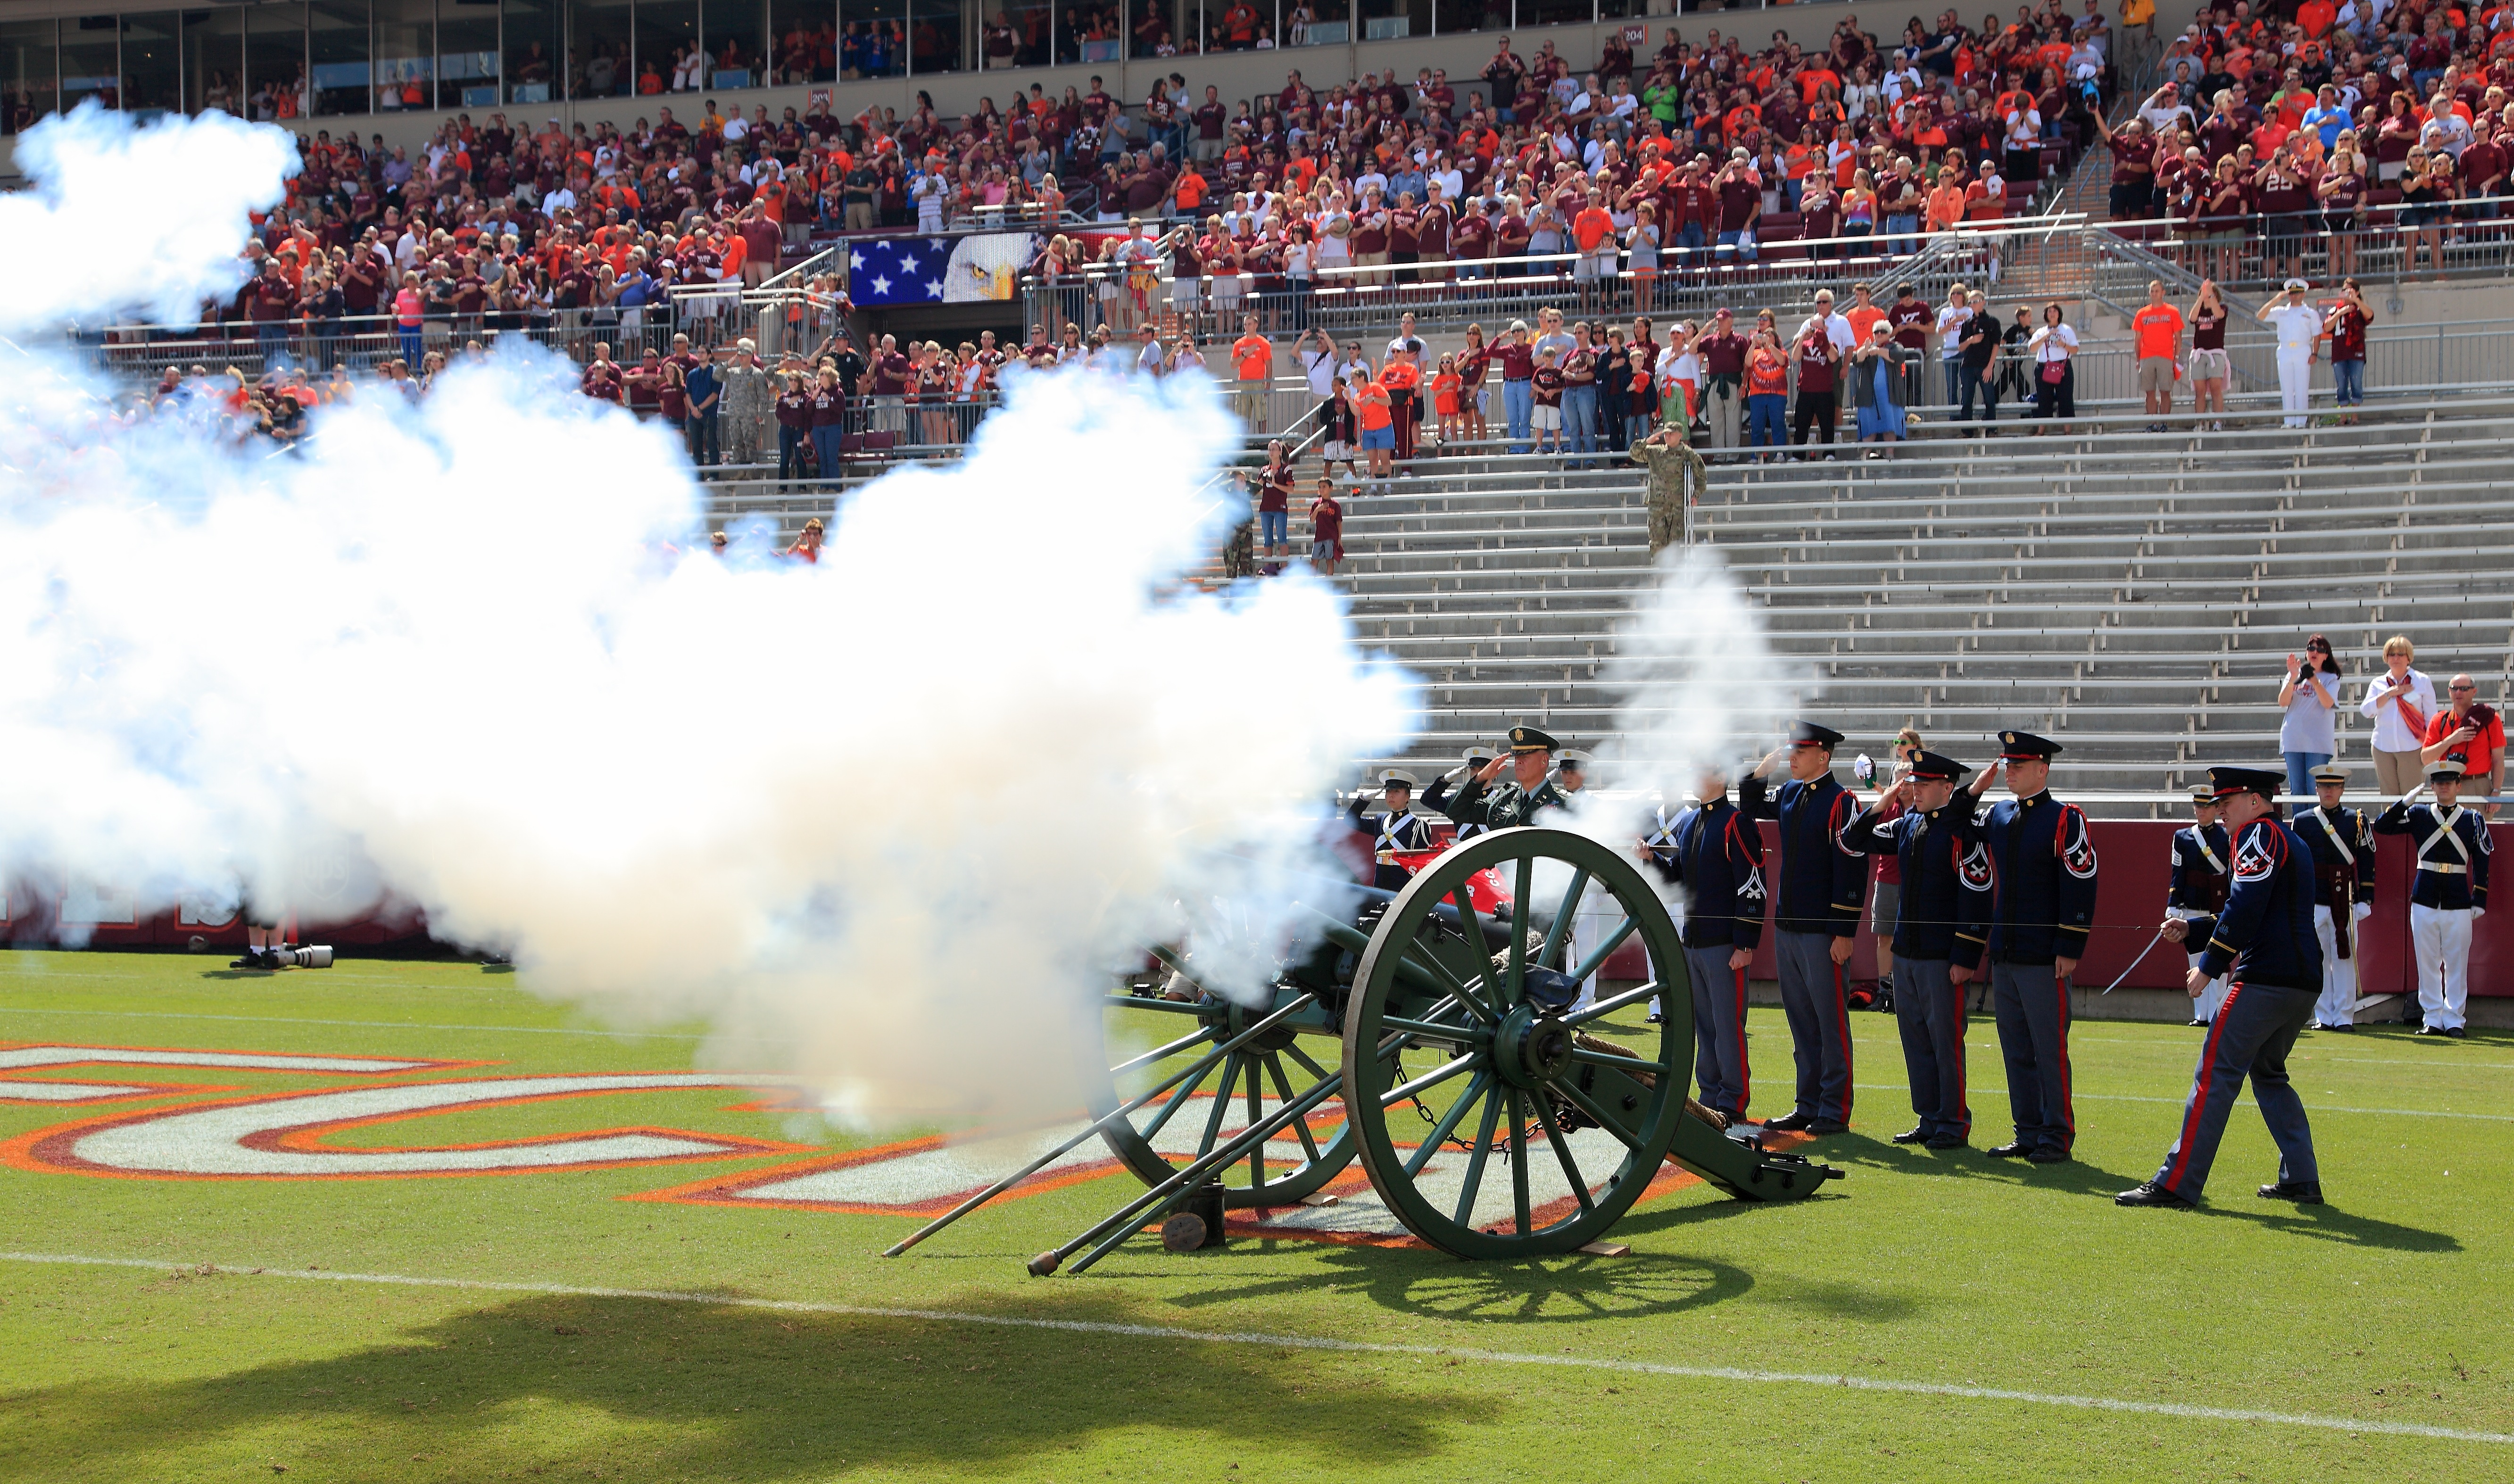 Skipper, the Corps of Cadets cannon, fires at the end of the national anthem prior to kickoff of the Bowling Green game in Lane Stadium.